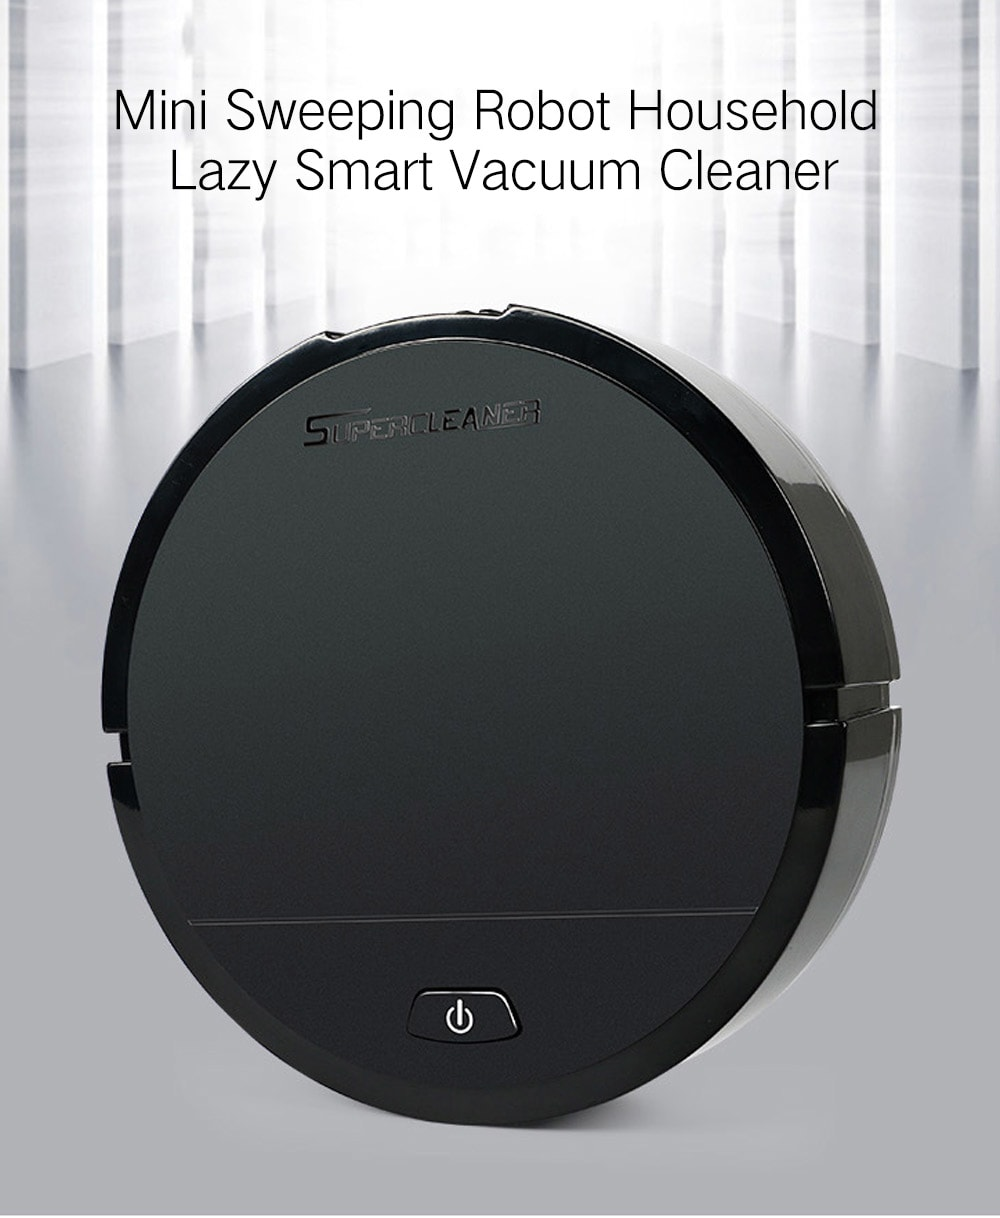 Mini Sweeping Robot Household Cleaning Machine Lazy Smart Vacuum Cleaner- Black